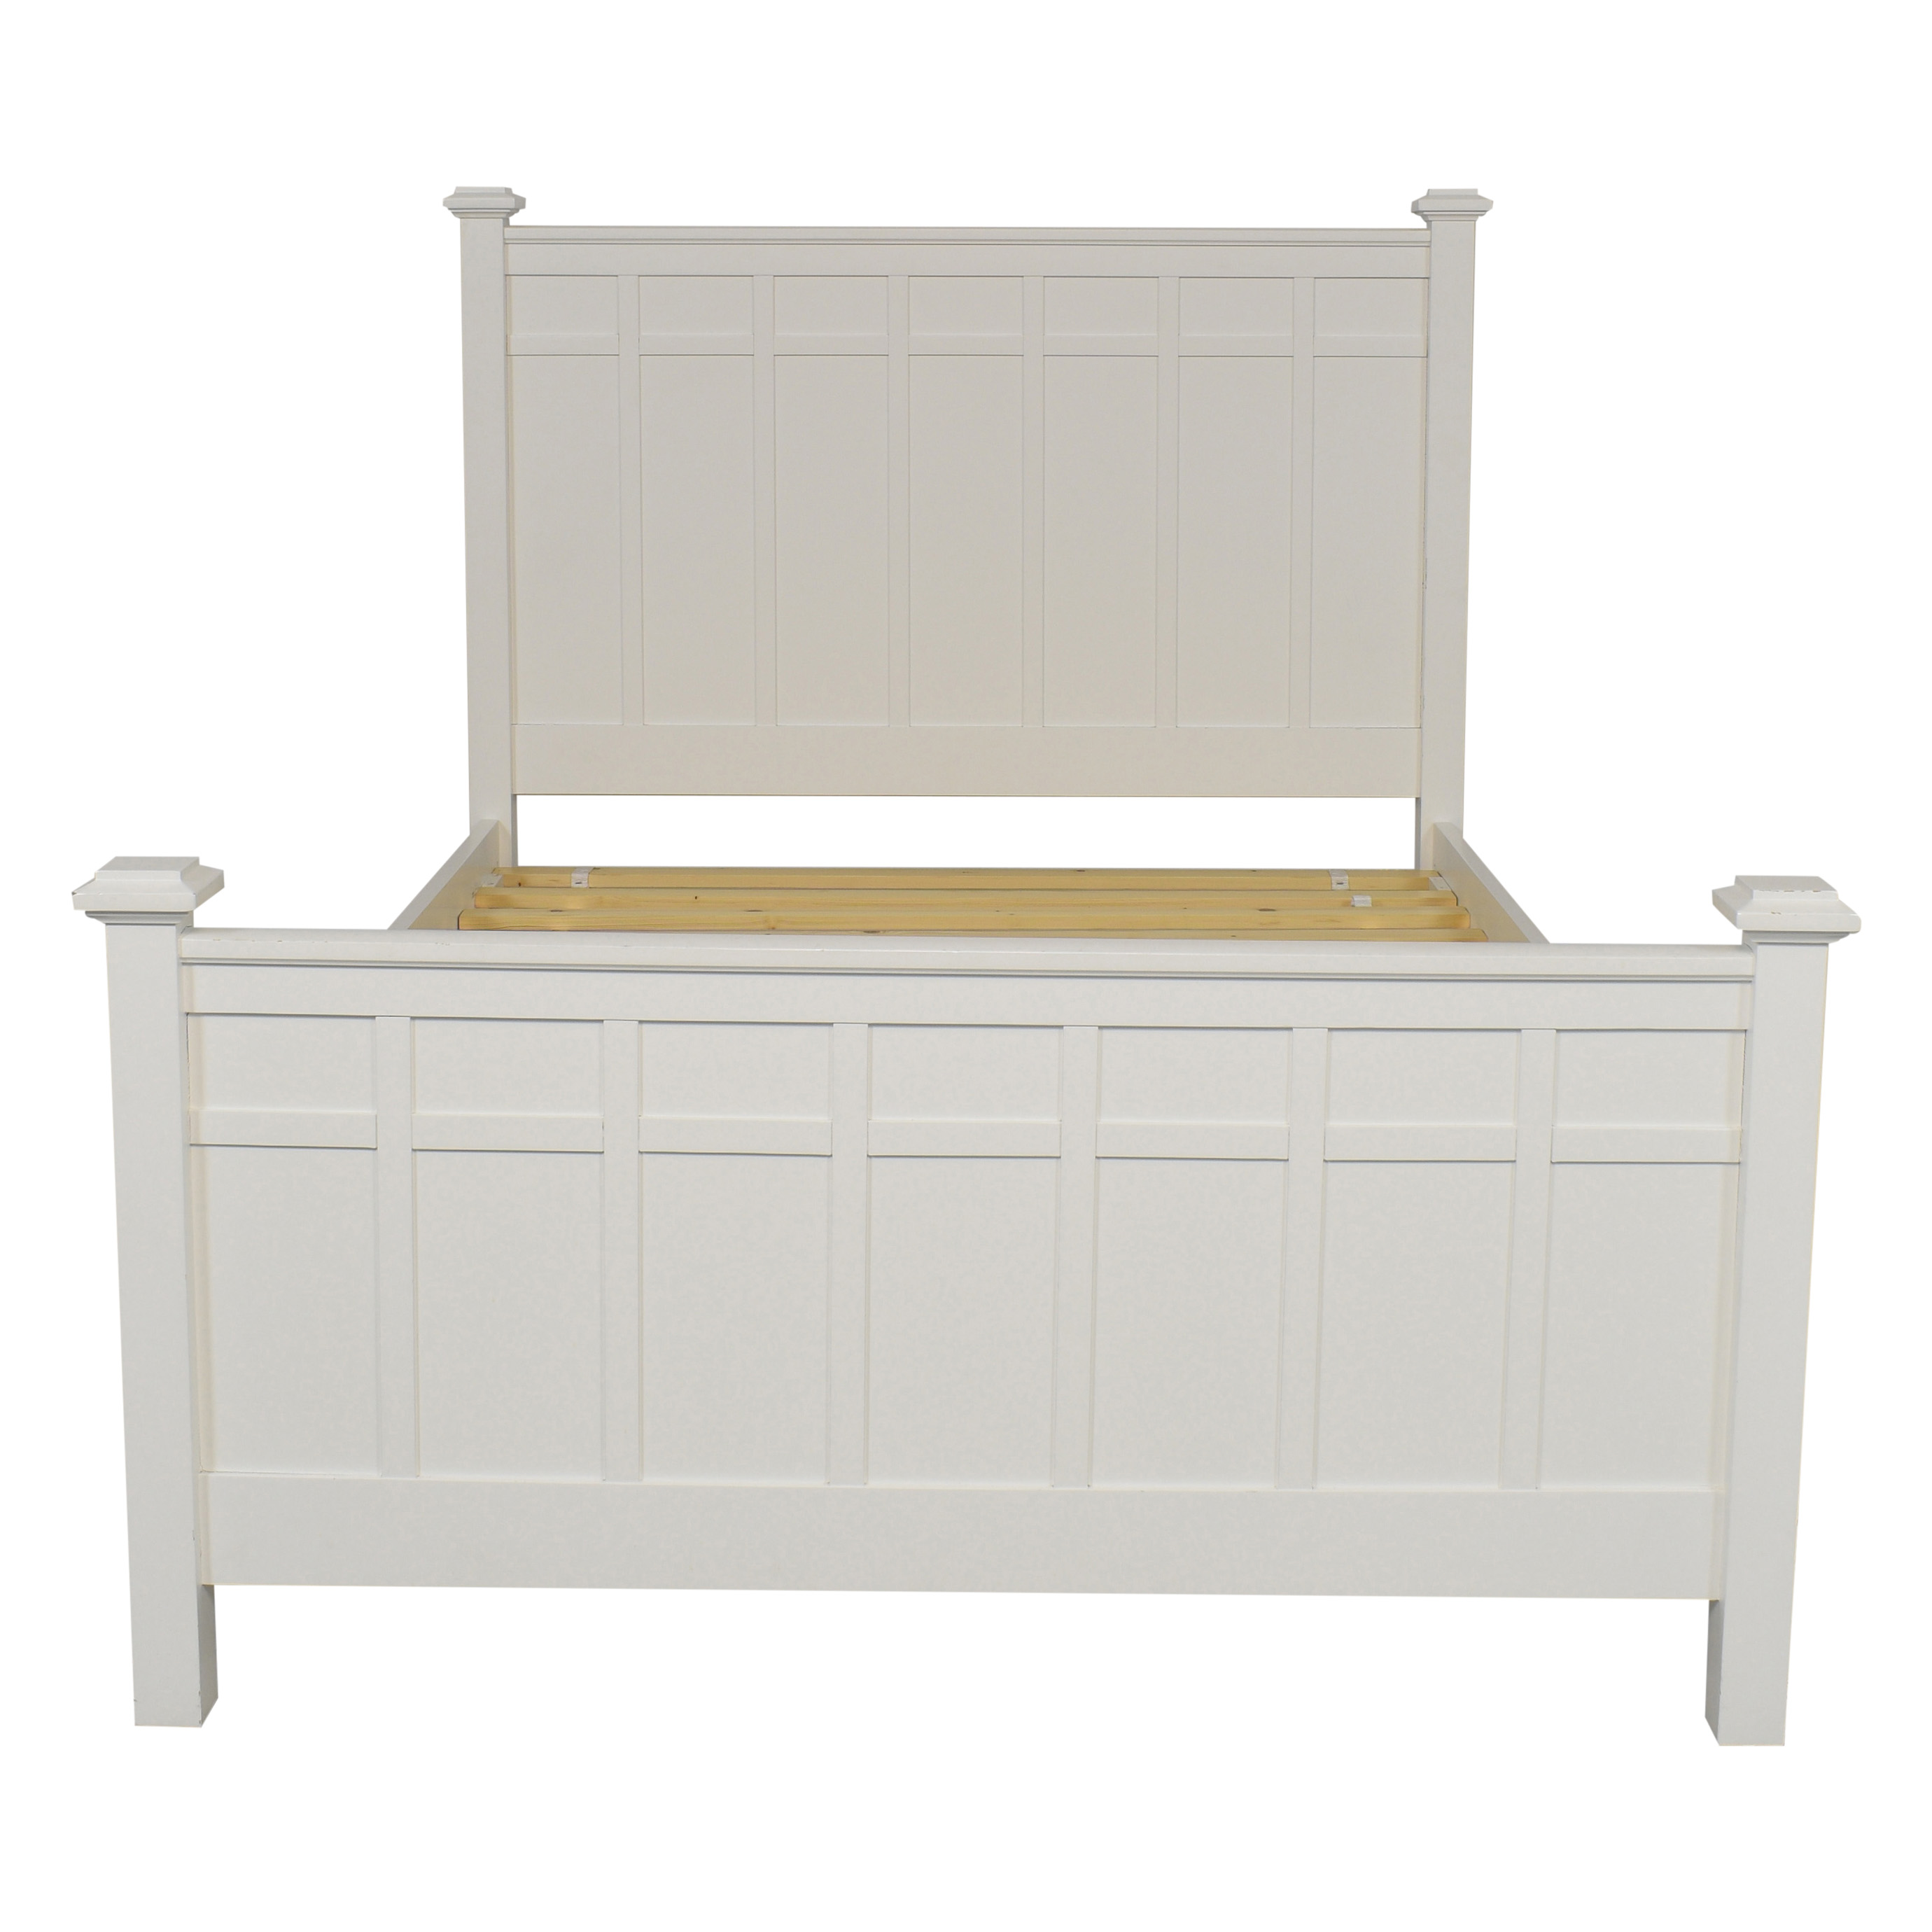 buy Crate & Barrel Brighton Full Bed Crate & Barrel Beds